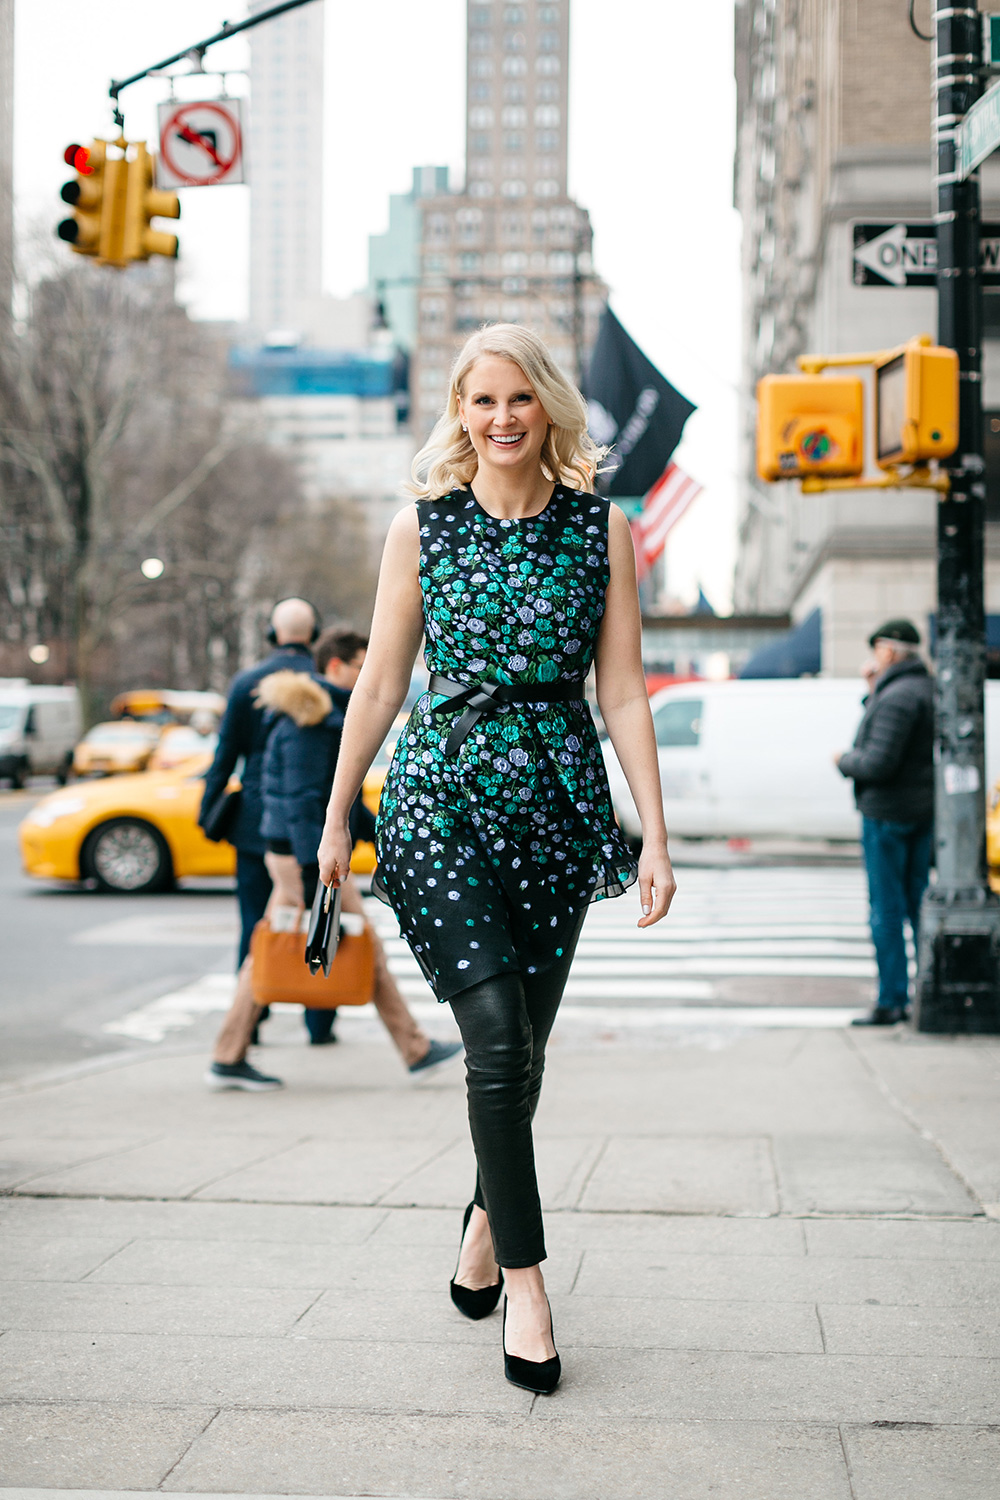 Merritt Beck at New York Fashion Week | The Style Scribe